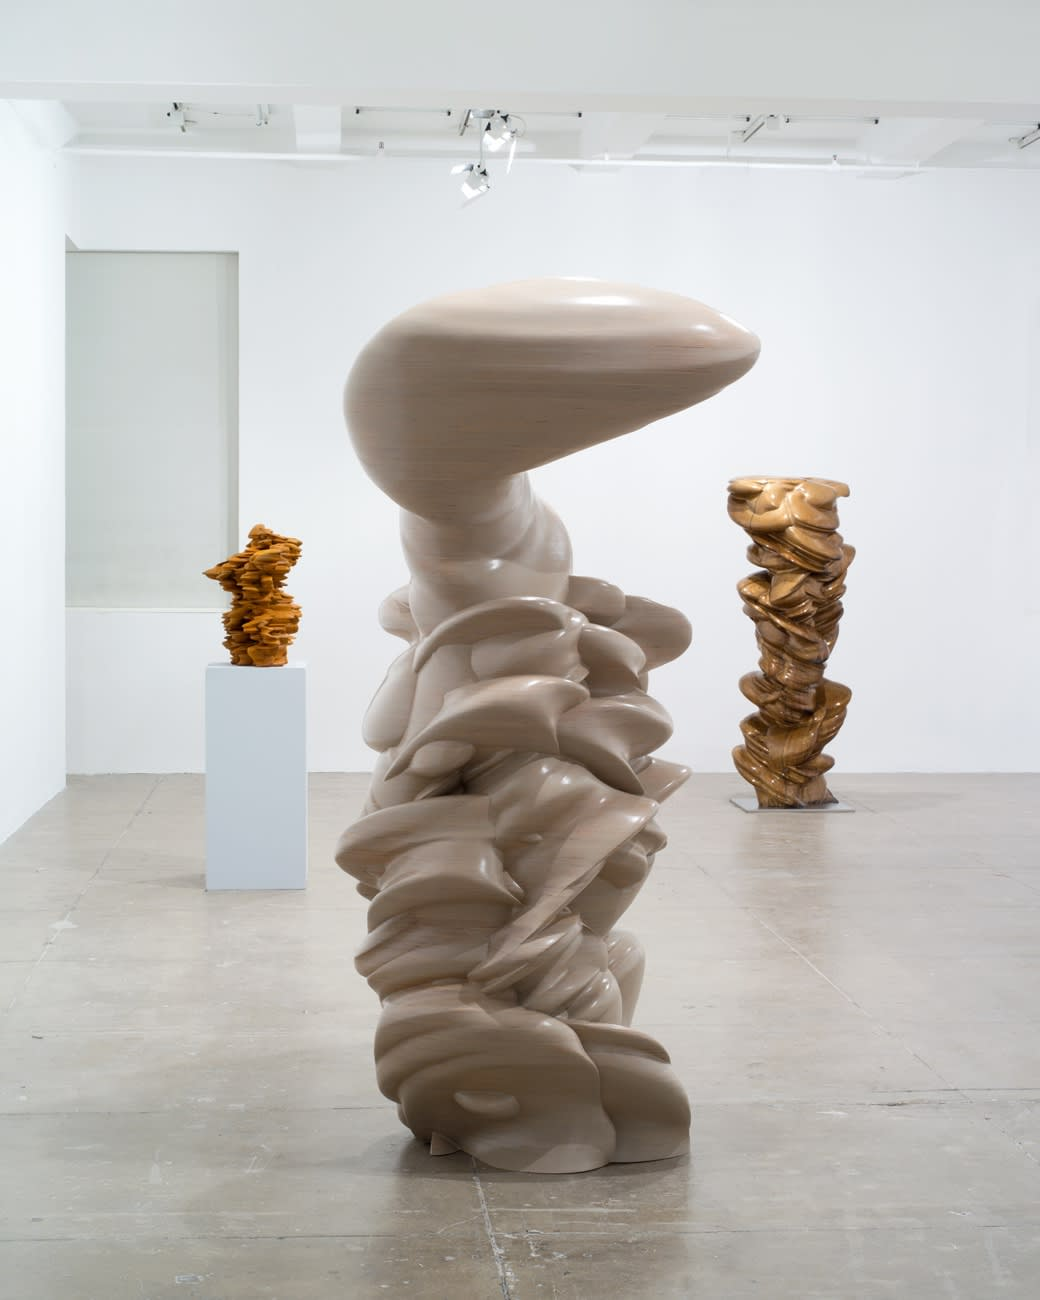 Three vertical abstract sculptures stand in a large white room; the sculpture on the left is on a pedestal. They are beige and brown with both smooth and jagged edges.